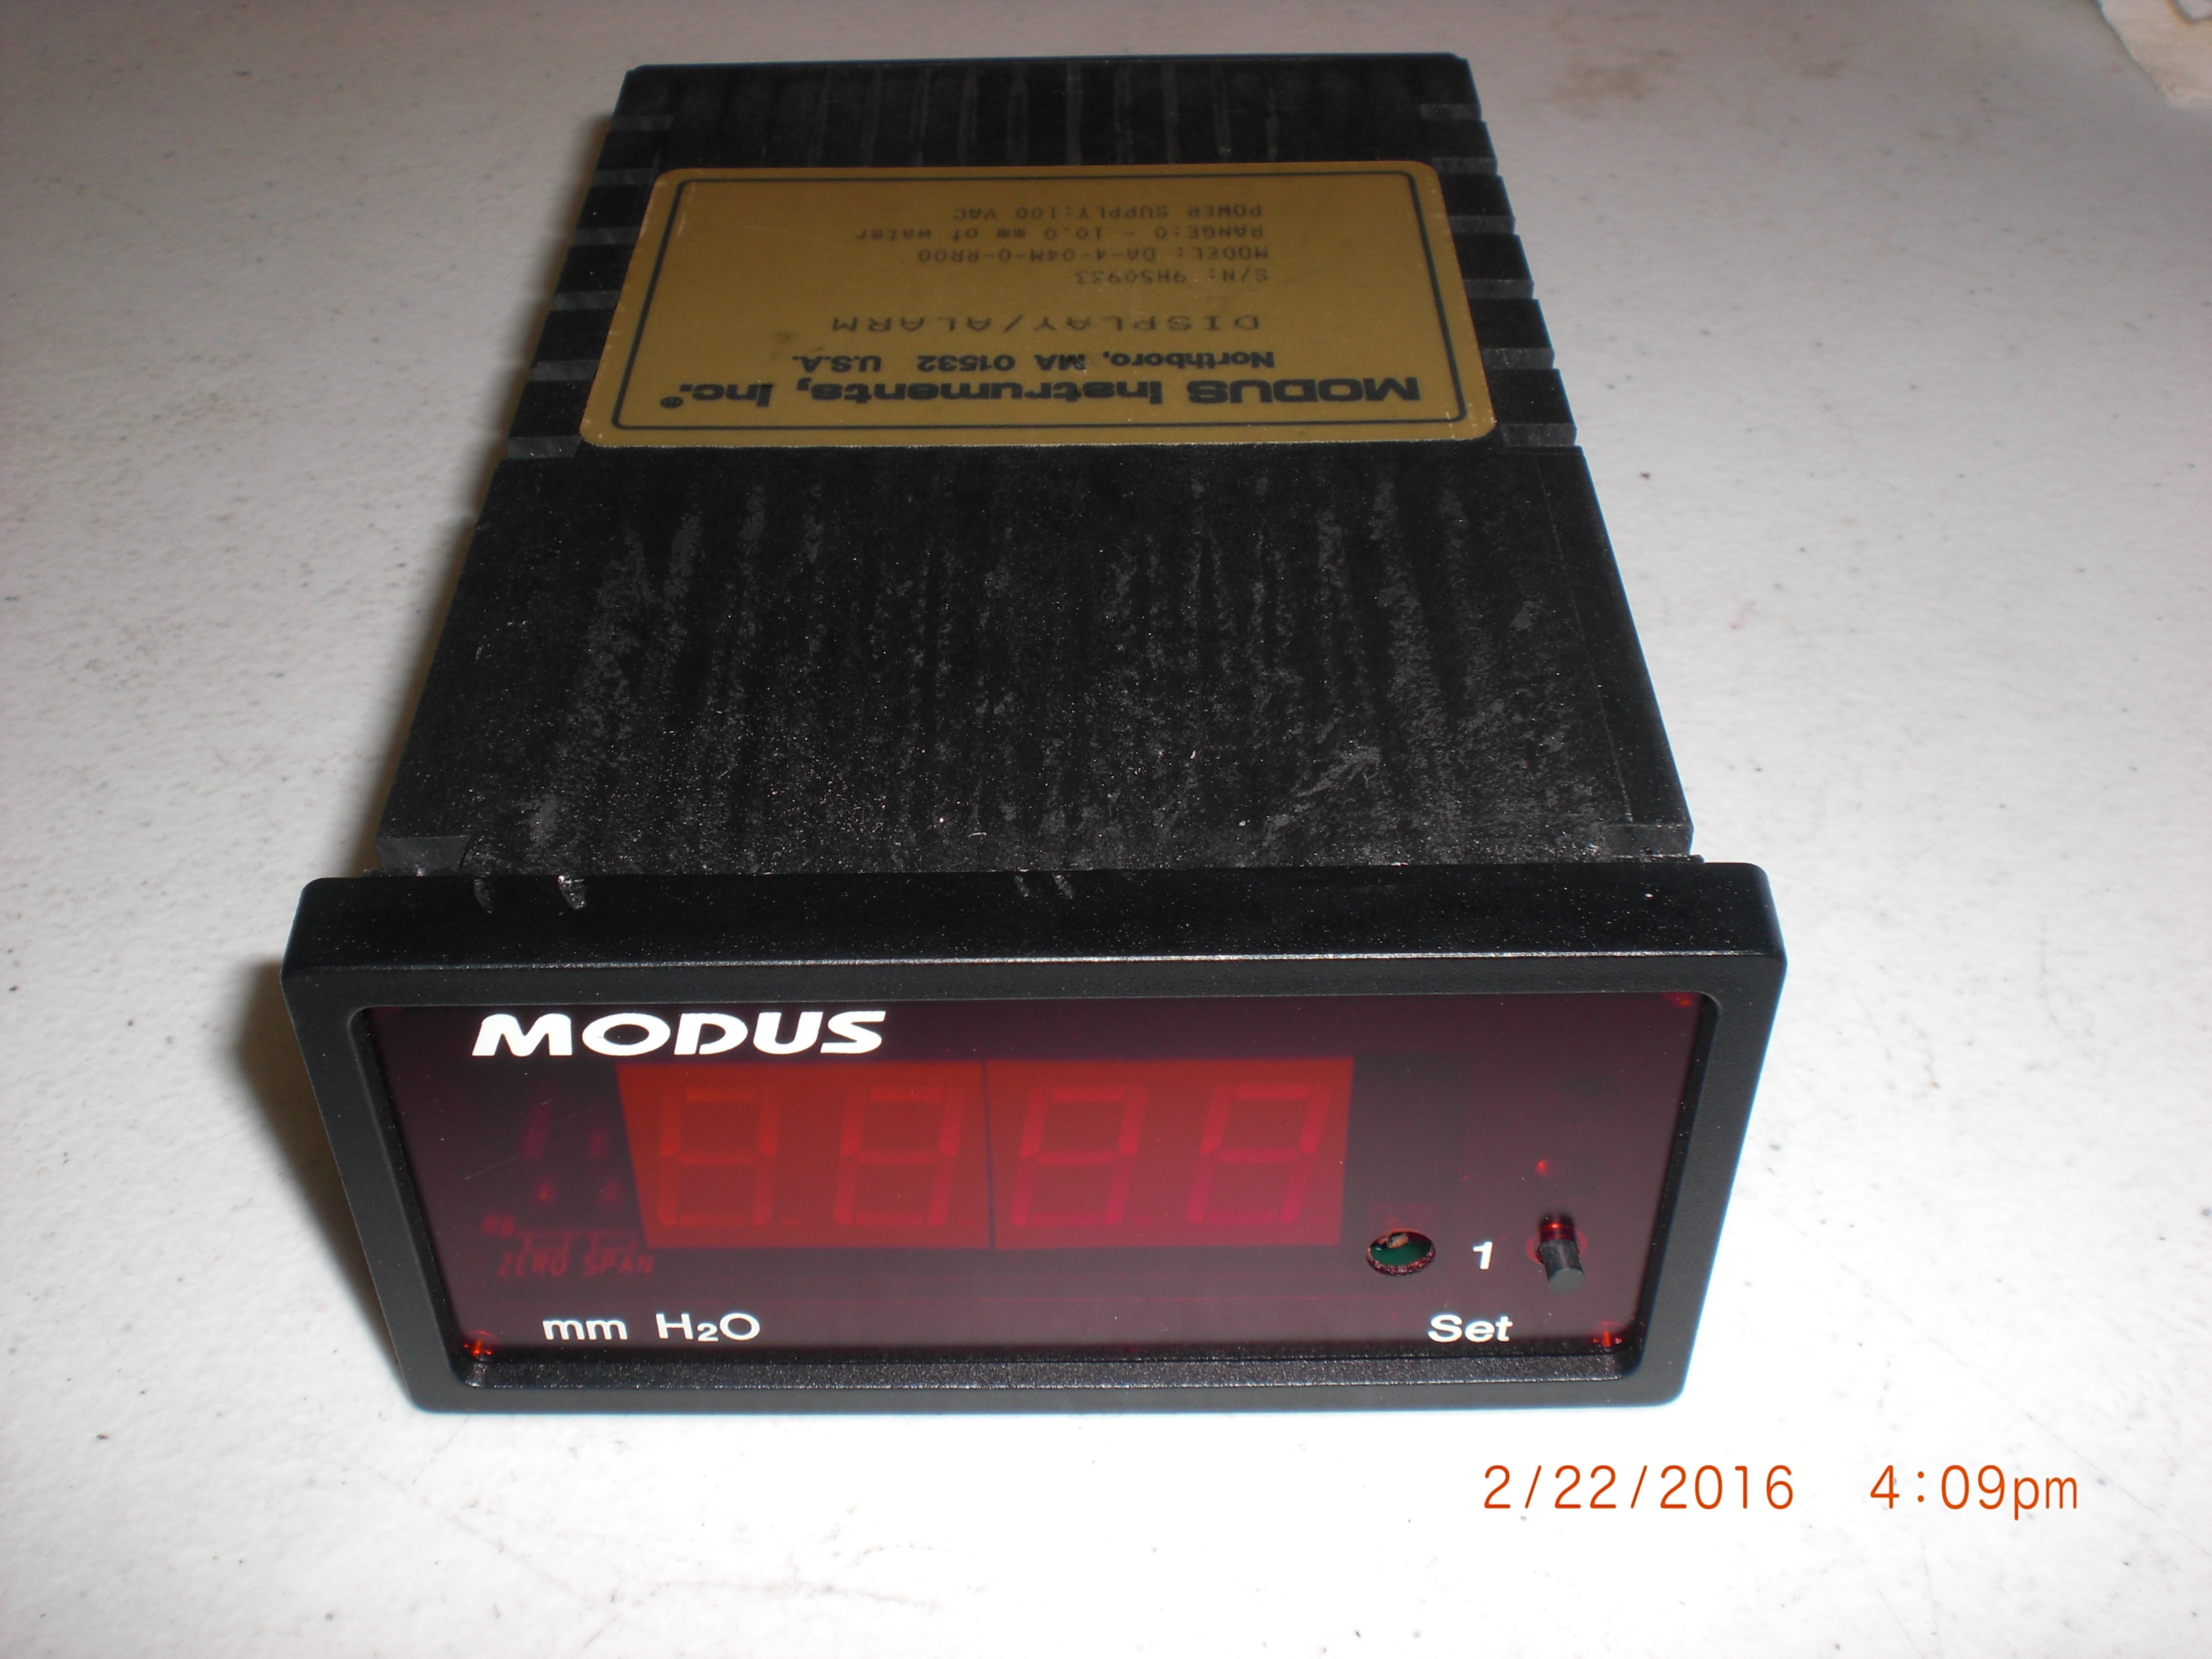 Gauge MODUS DA-4-04M-0-RR00 VACUUM Display Alarm 0-10.0mm of water 100-110VAC